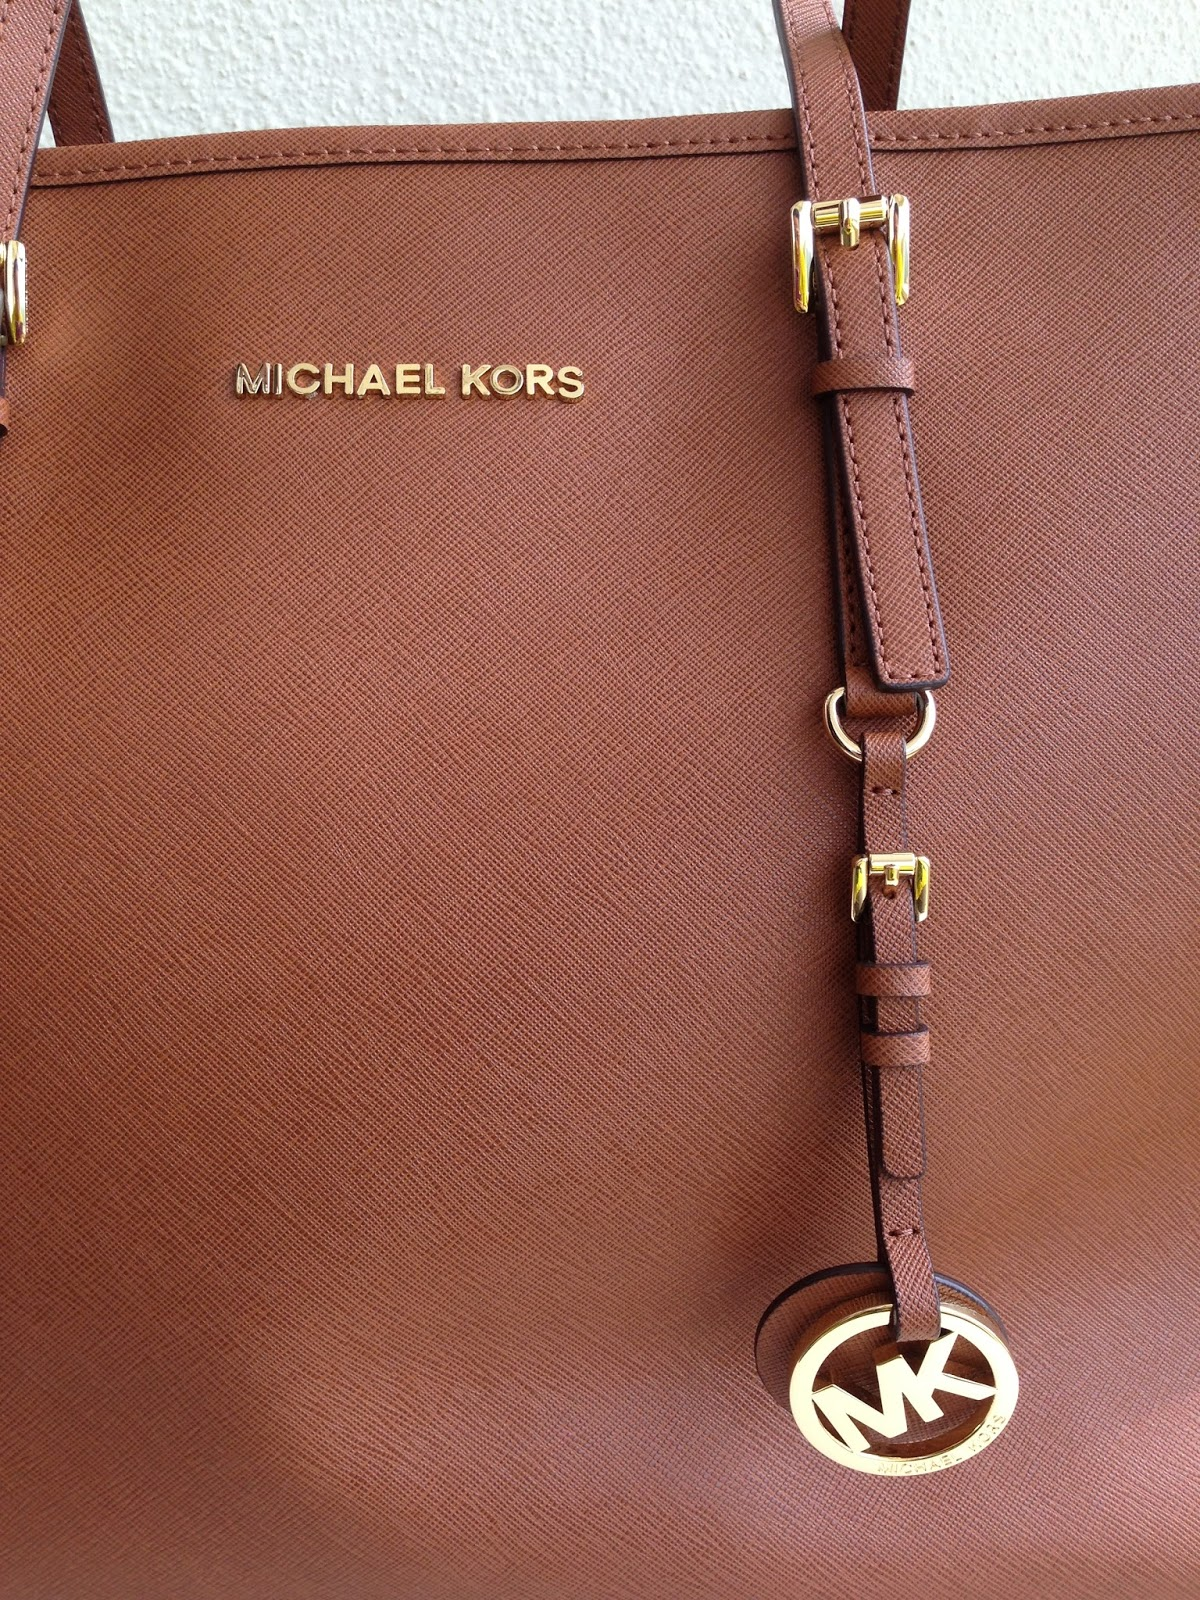 michael kors handbag jet set cheap michael kors handbags malaysia